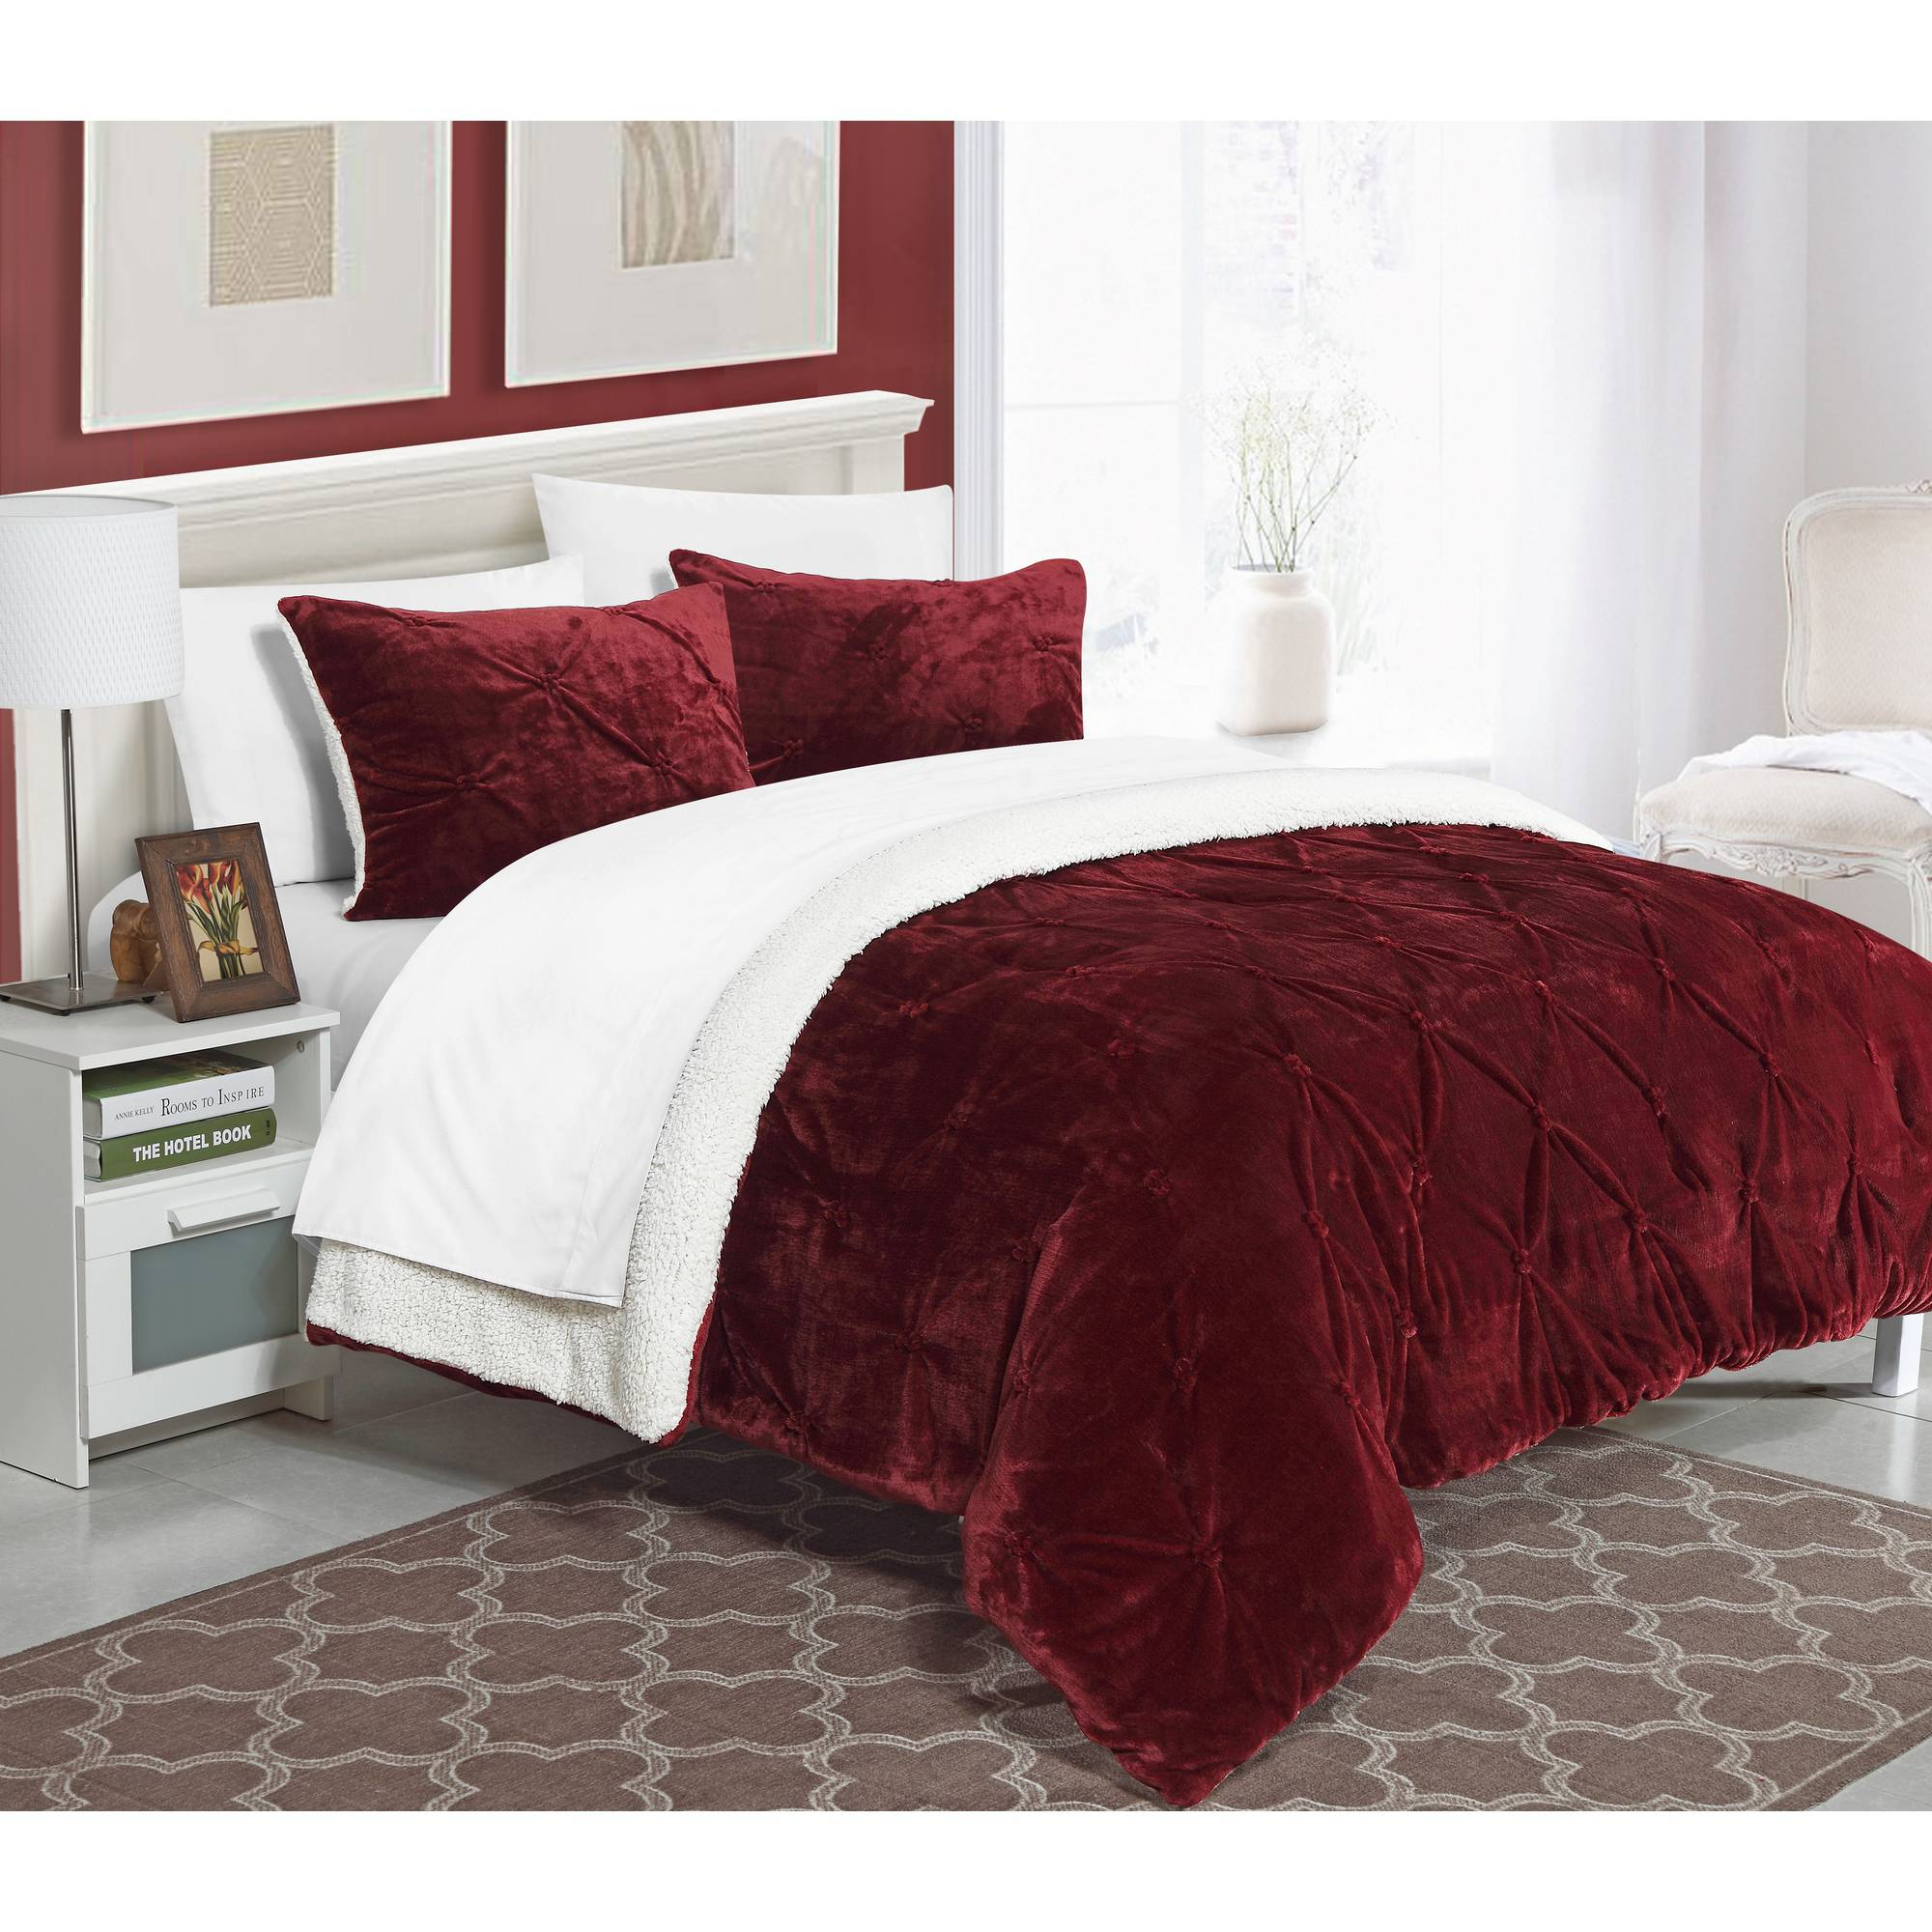 teal images bedding concept sets burgundy brown and gold white blue red comforter marvelous grey